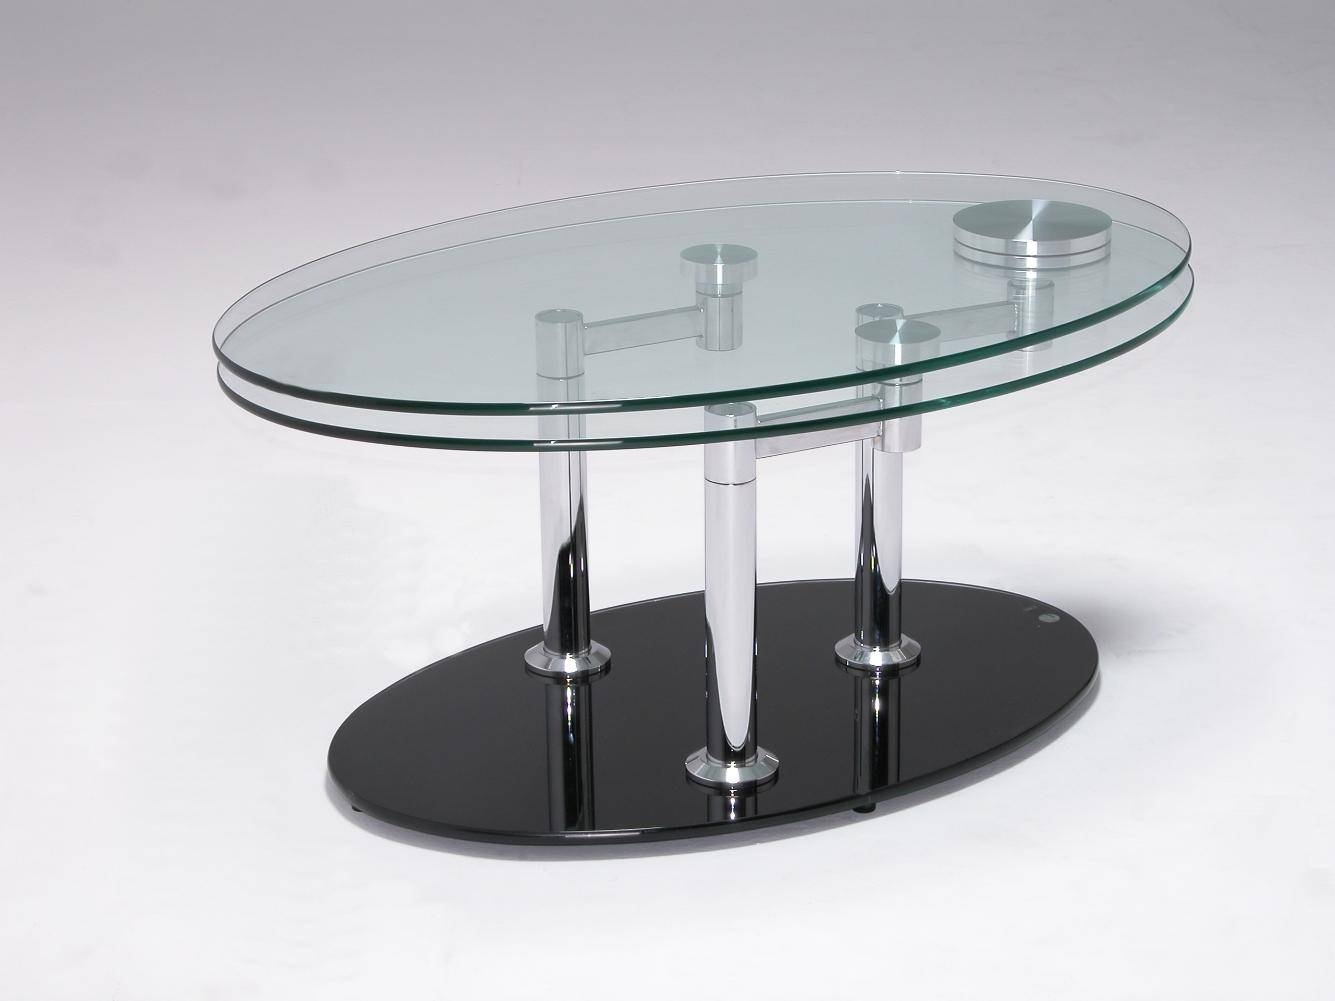 Best Contemporary Coffee Table Inside Coffee Tables With Oval Shape (View 3 of 30)